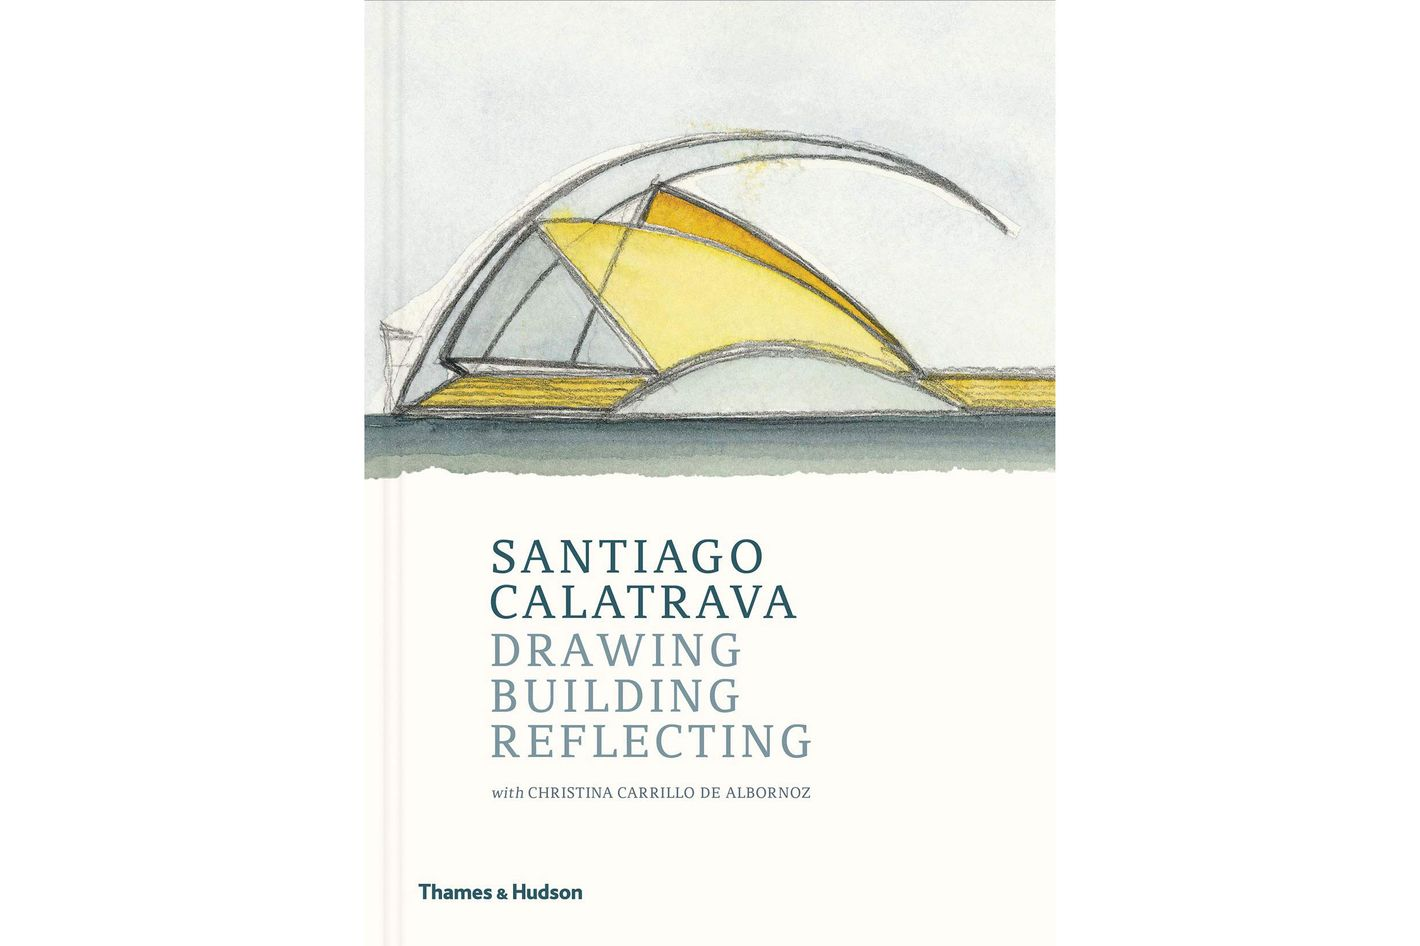 <em>Drawing, Building, Reflecting </em>by Santiago Calatrava With Cristina Carrillo de Albornoz